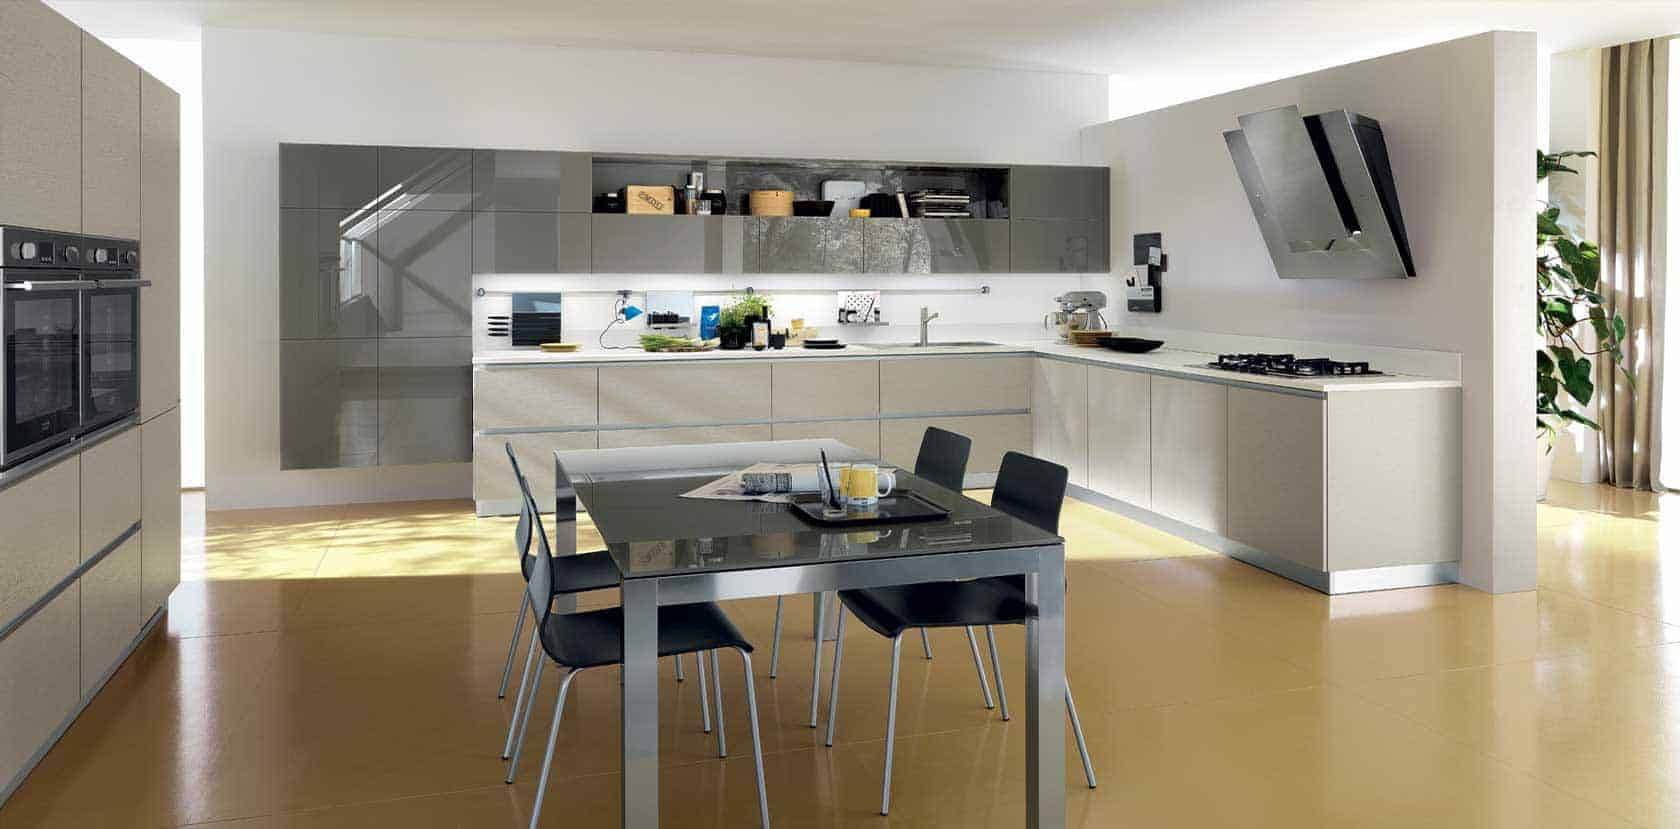 Kitchen Design Melbourne Victoria Australia 2016